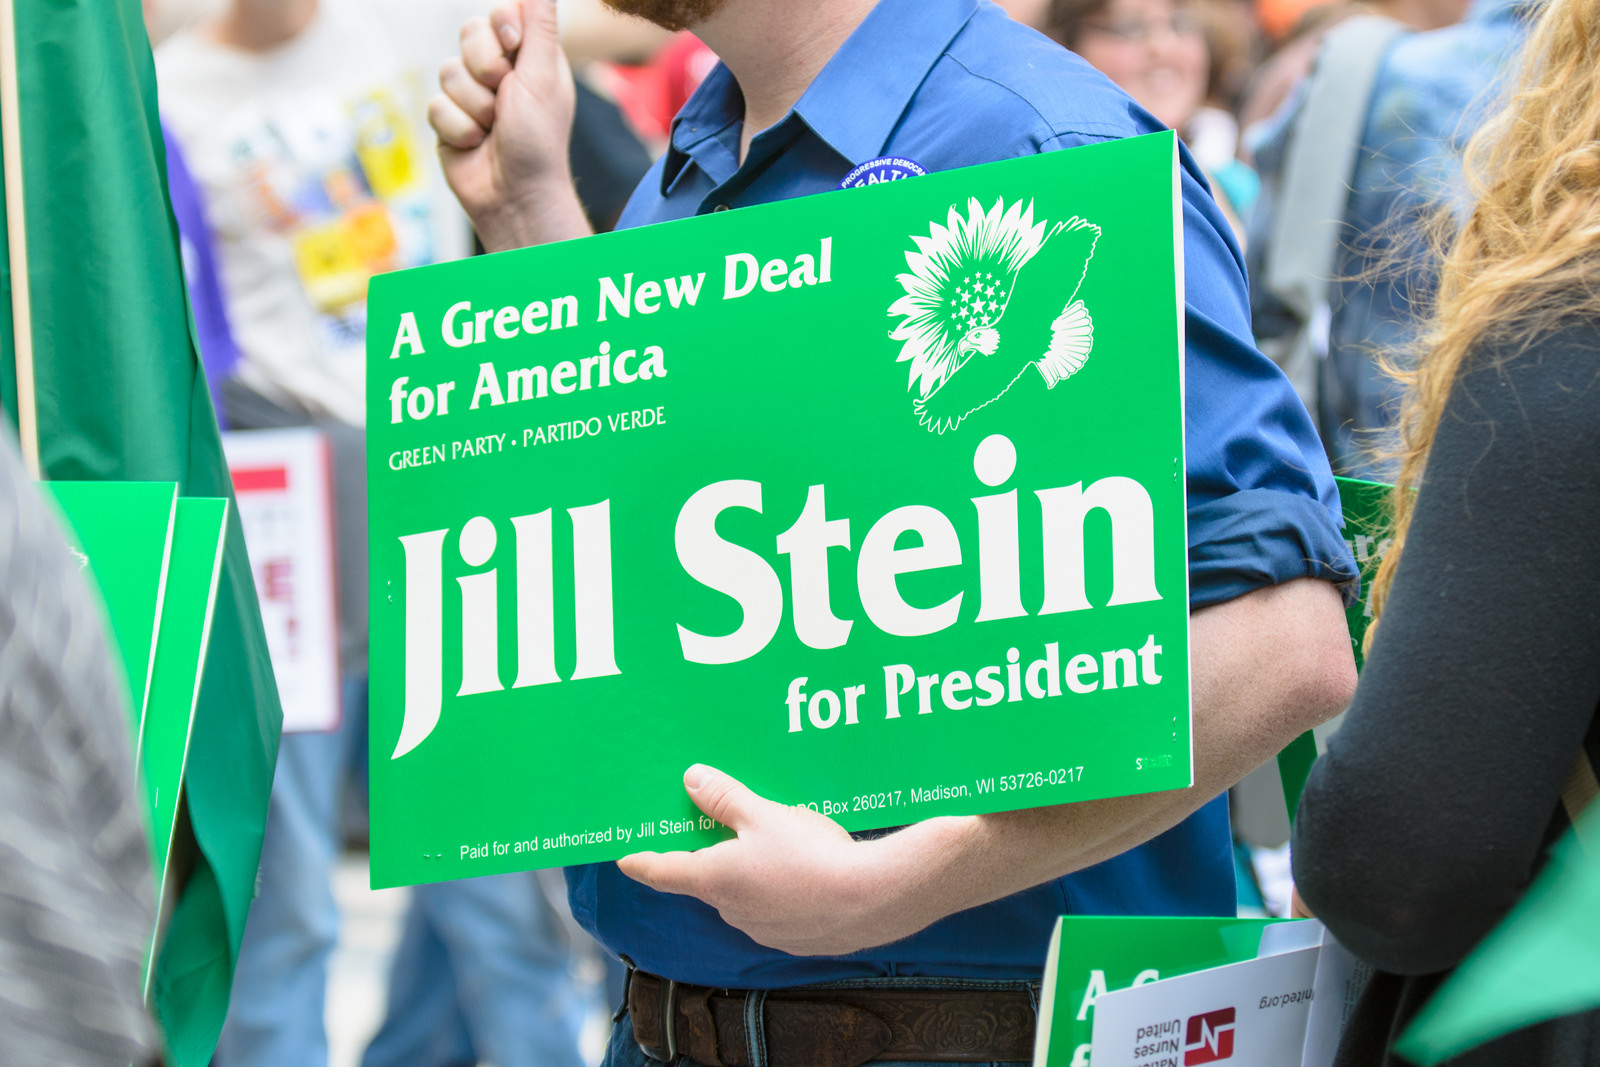 A Jill Stein supporter at the Nurses Campaign to Heal the World rally at Daley Plaza as part of the 2012 N.A.T.O. Summit in Chicago.